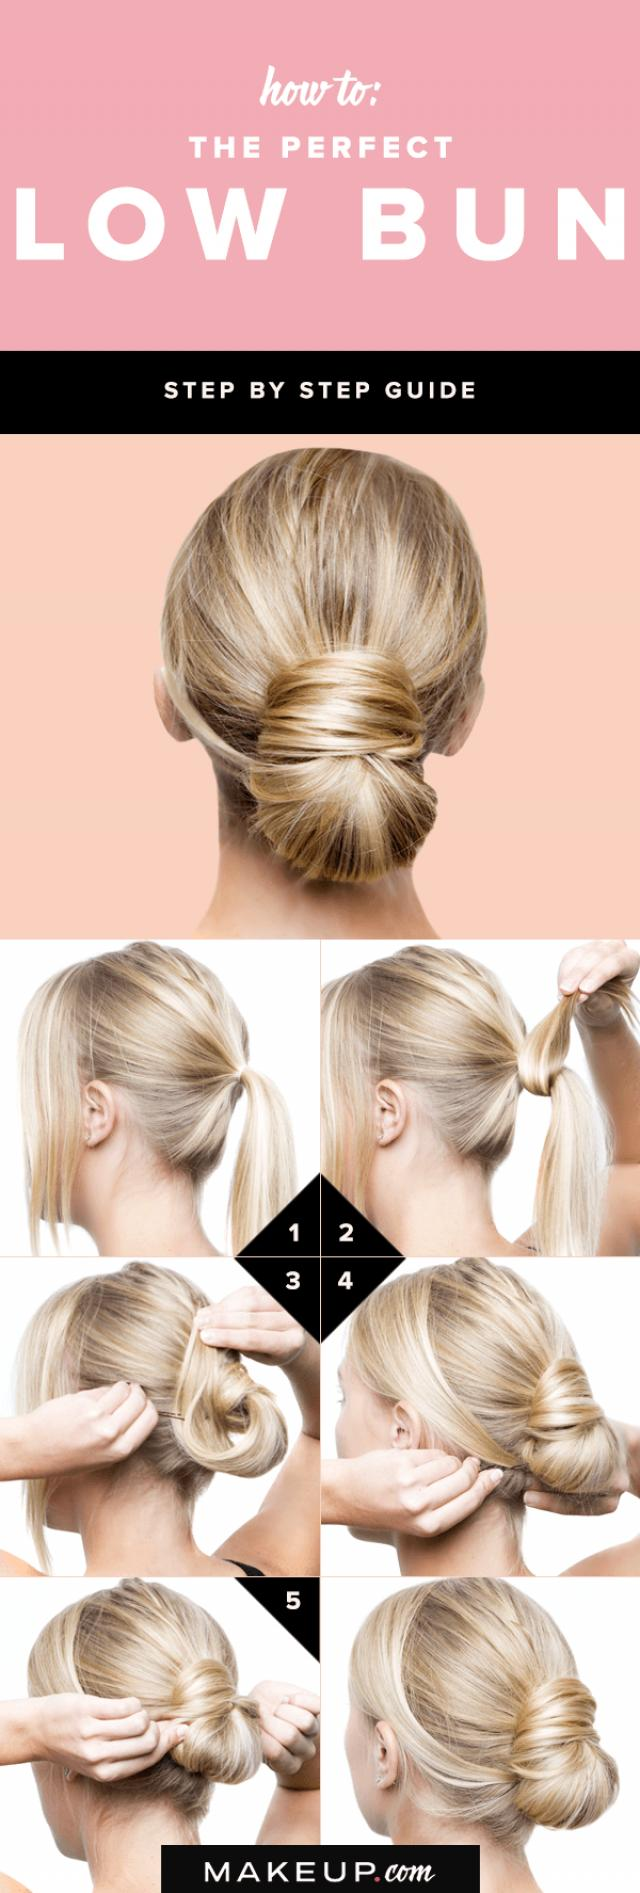 how to make hair style bun how to the low bun weddbook 5146